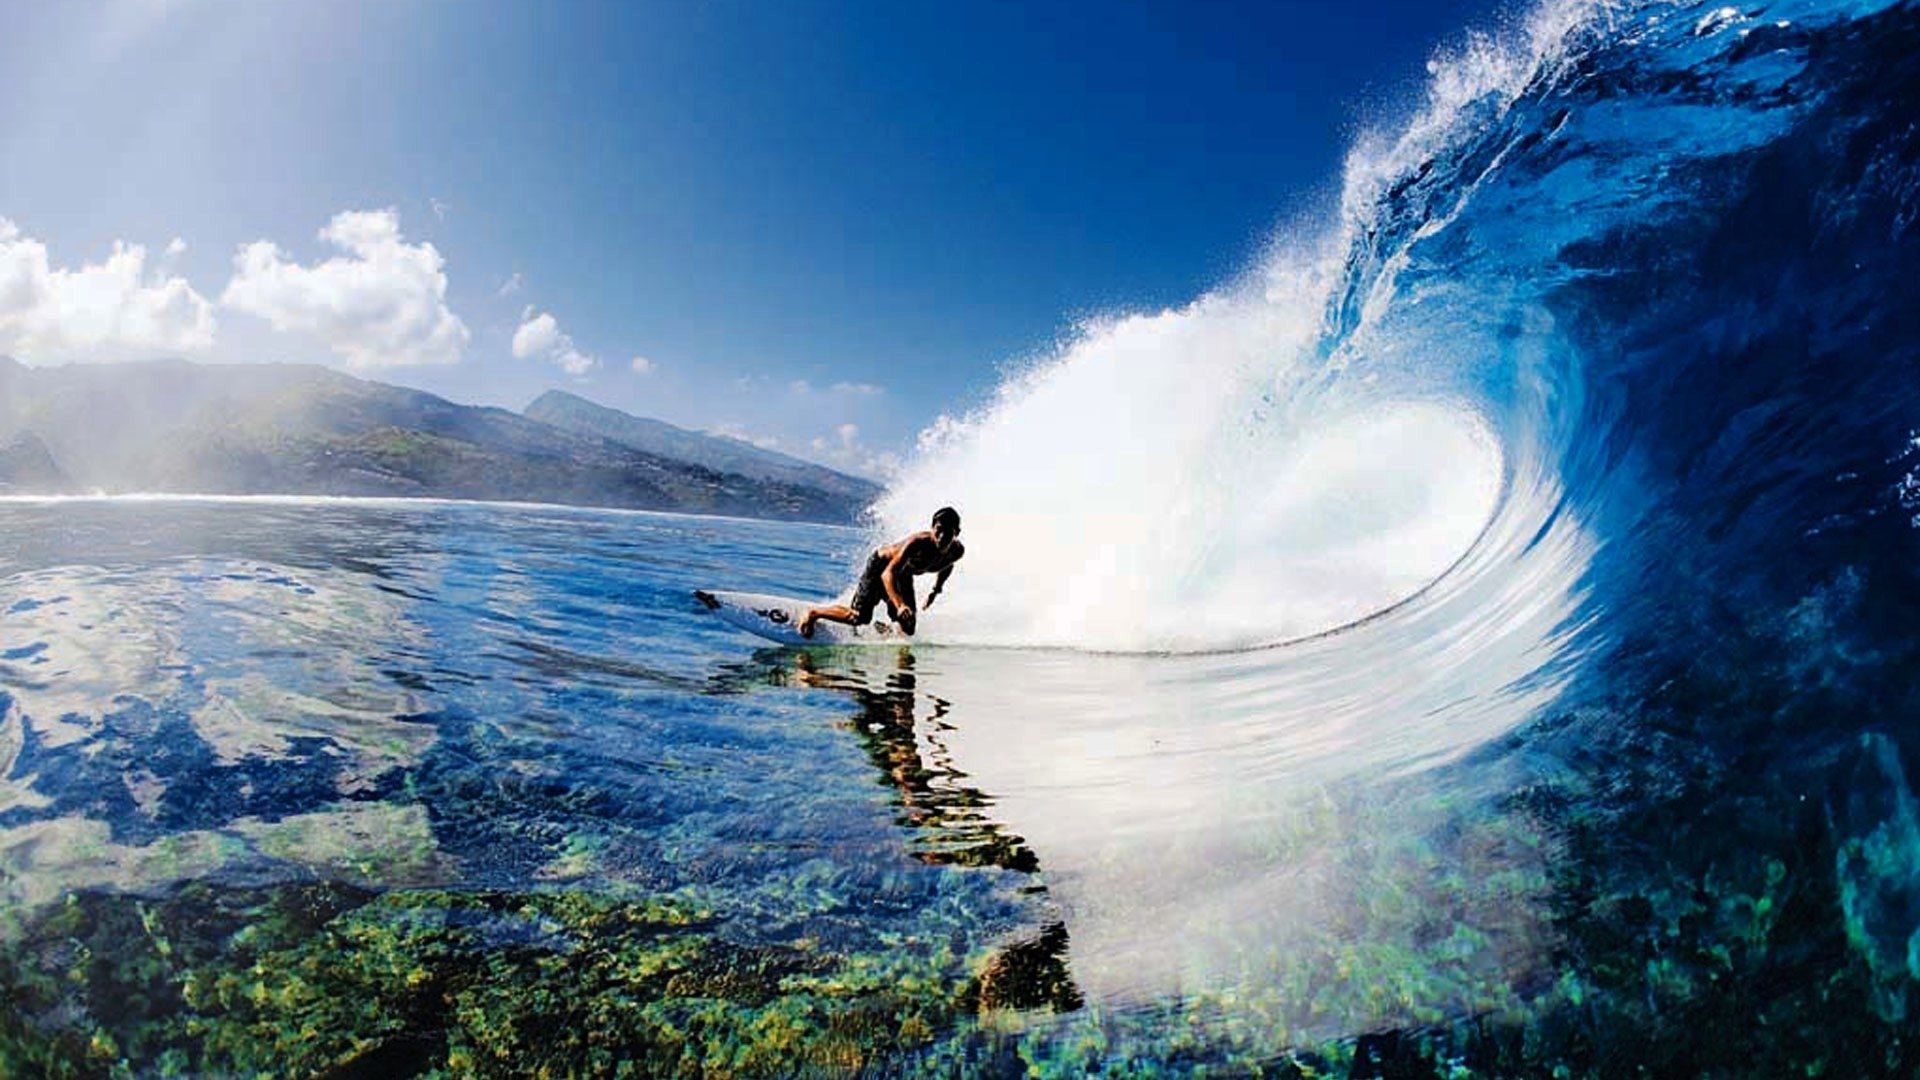 Surfing Waves Wallpapers HD Resolution With Wallpaper High 1920x1080 Px 42844 KB